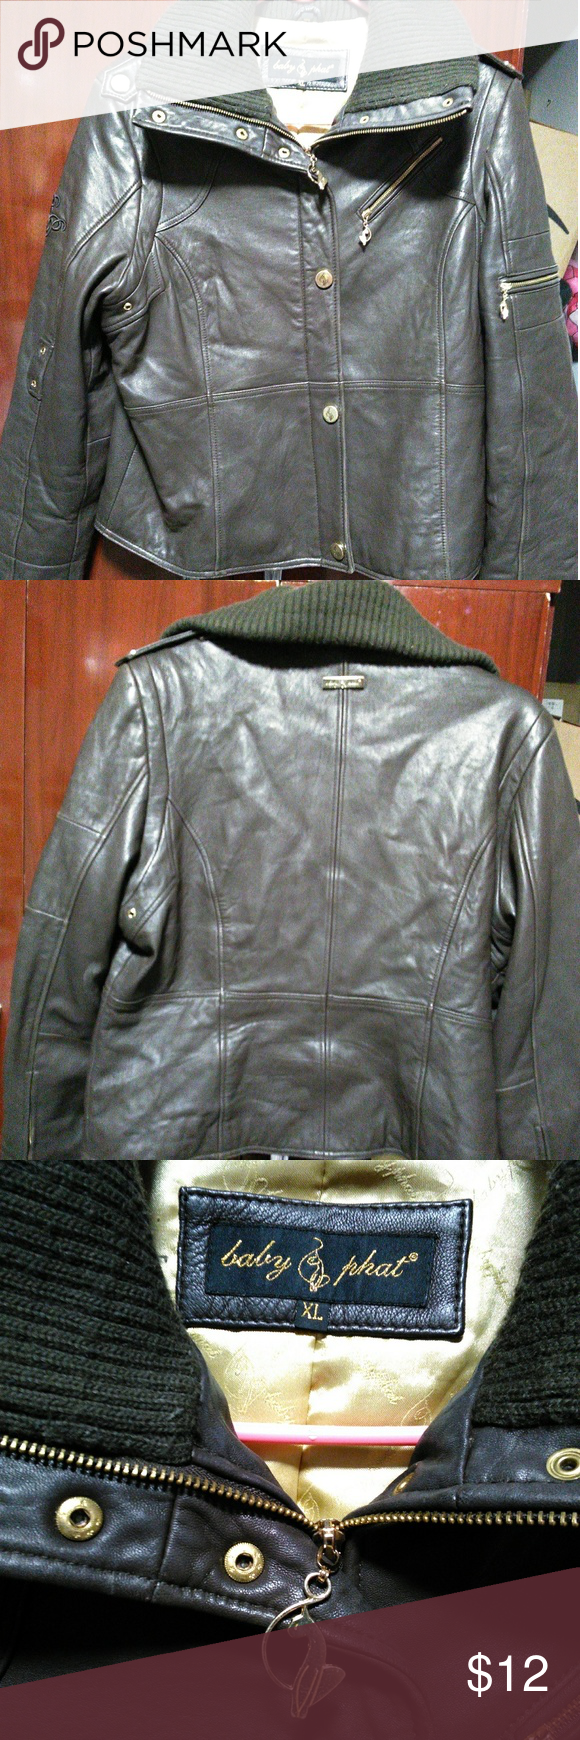 754046b49894 Baby Phat leather jacket Brown and gold baby phat leather thick warm ...